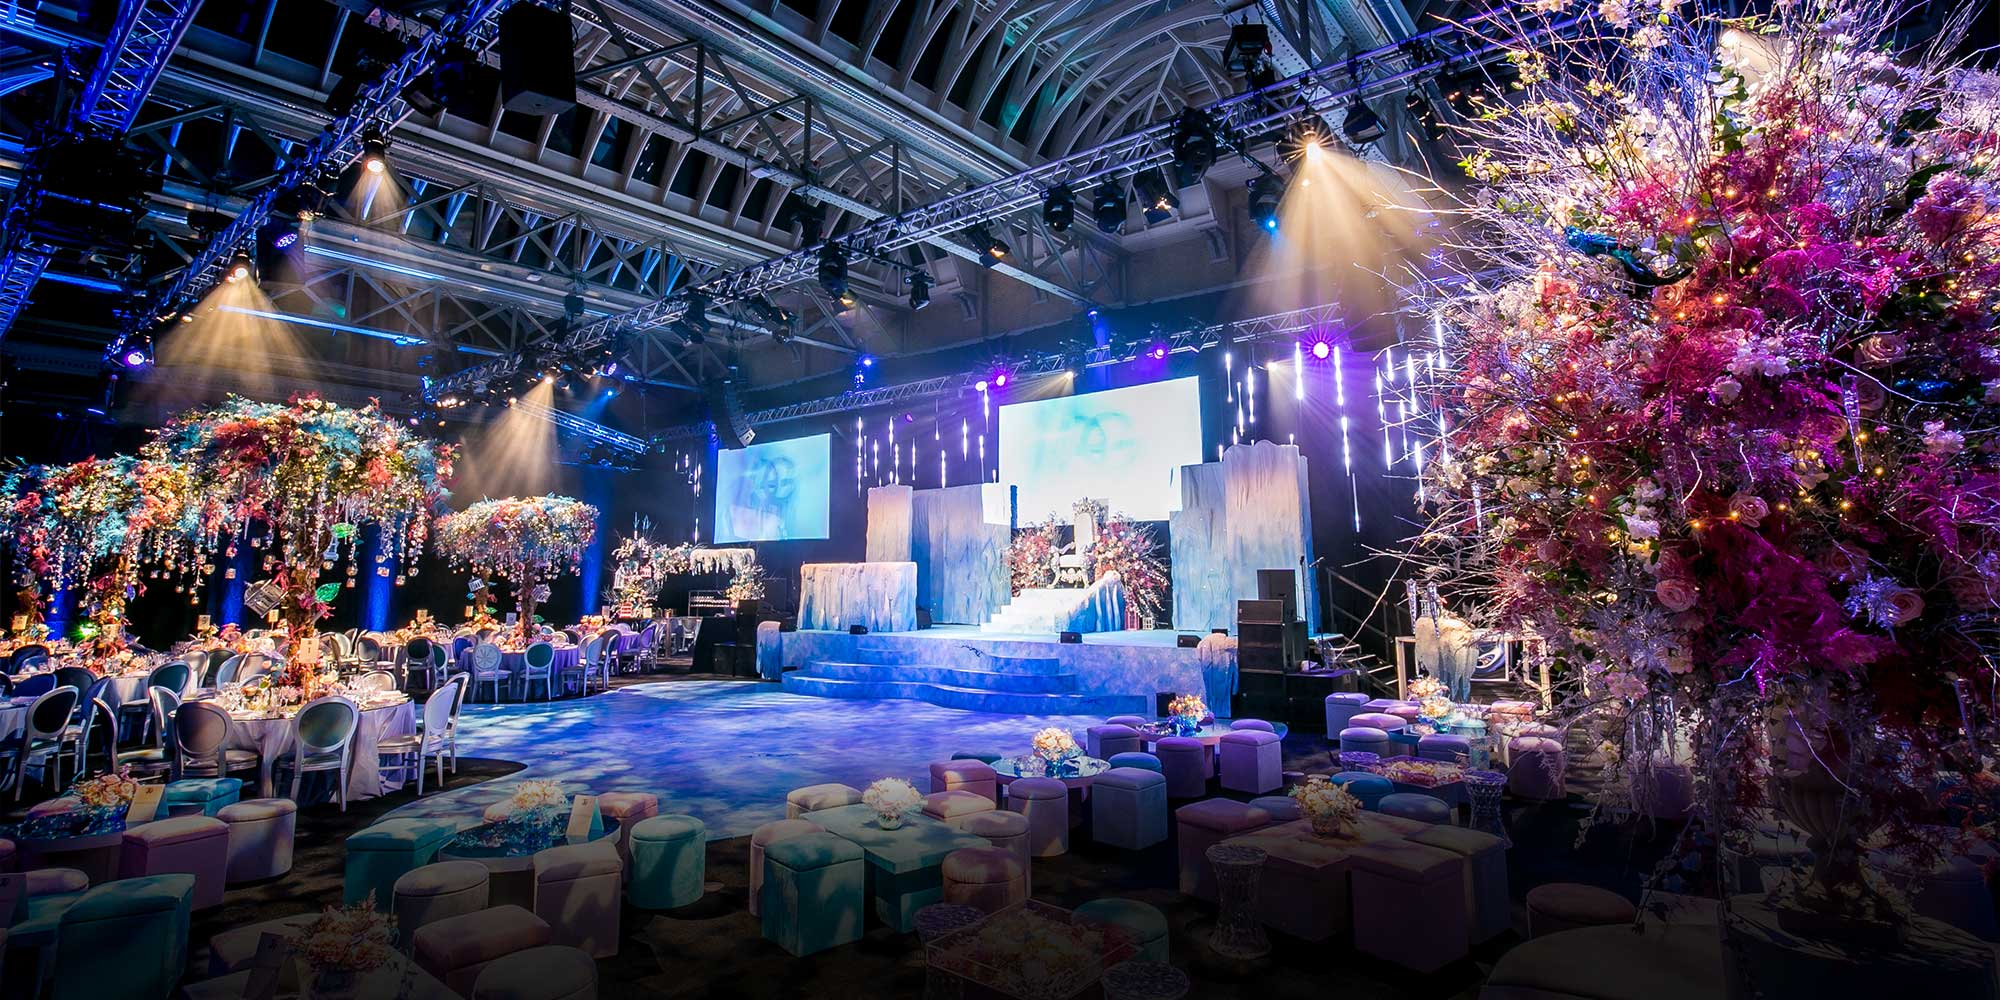 Old Billingsgate Ice Palace Themed Bat Mitzvah